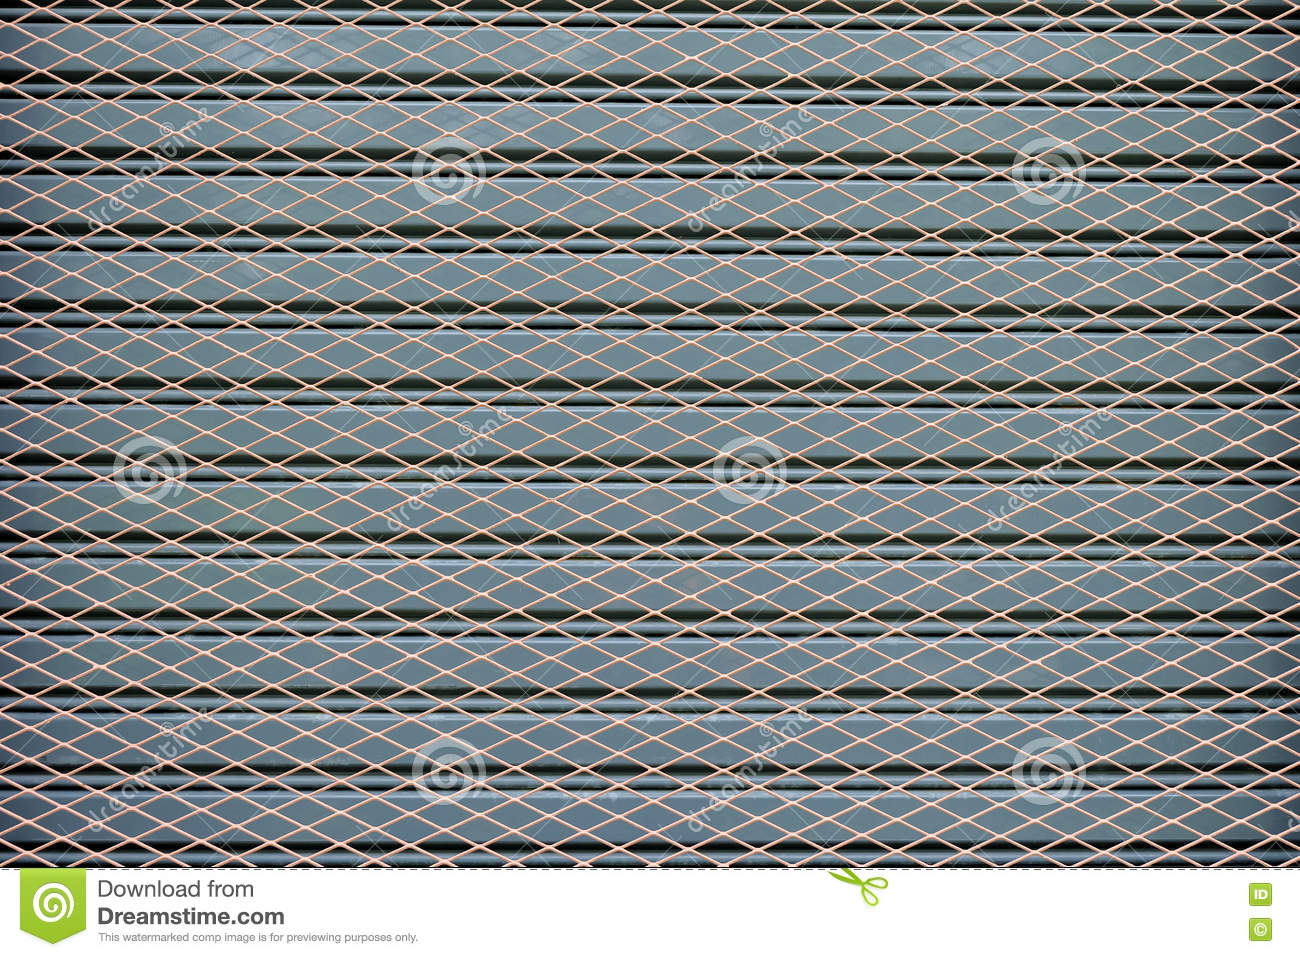 Wire Mesh Fence On Gray Steel Stock Image - Image of aluminum ...